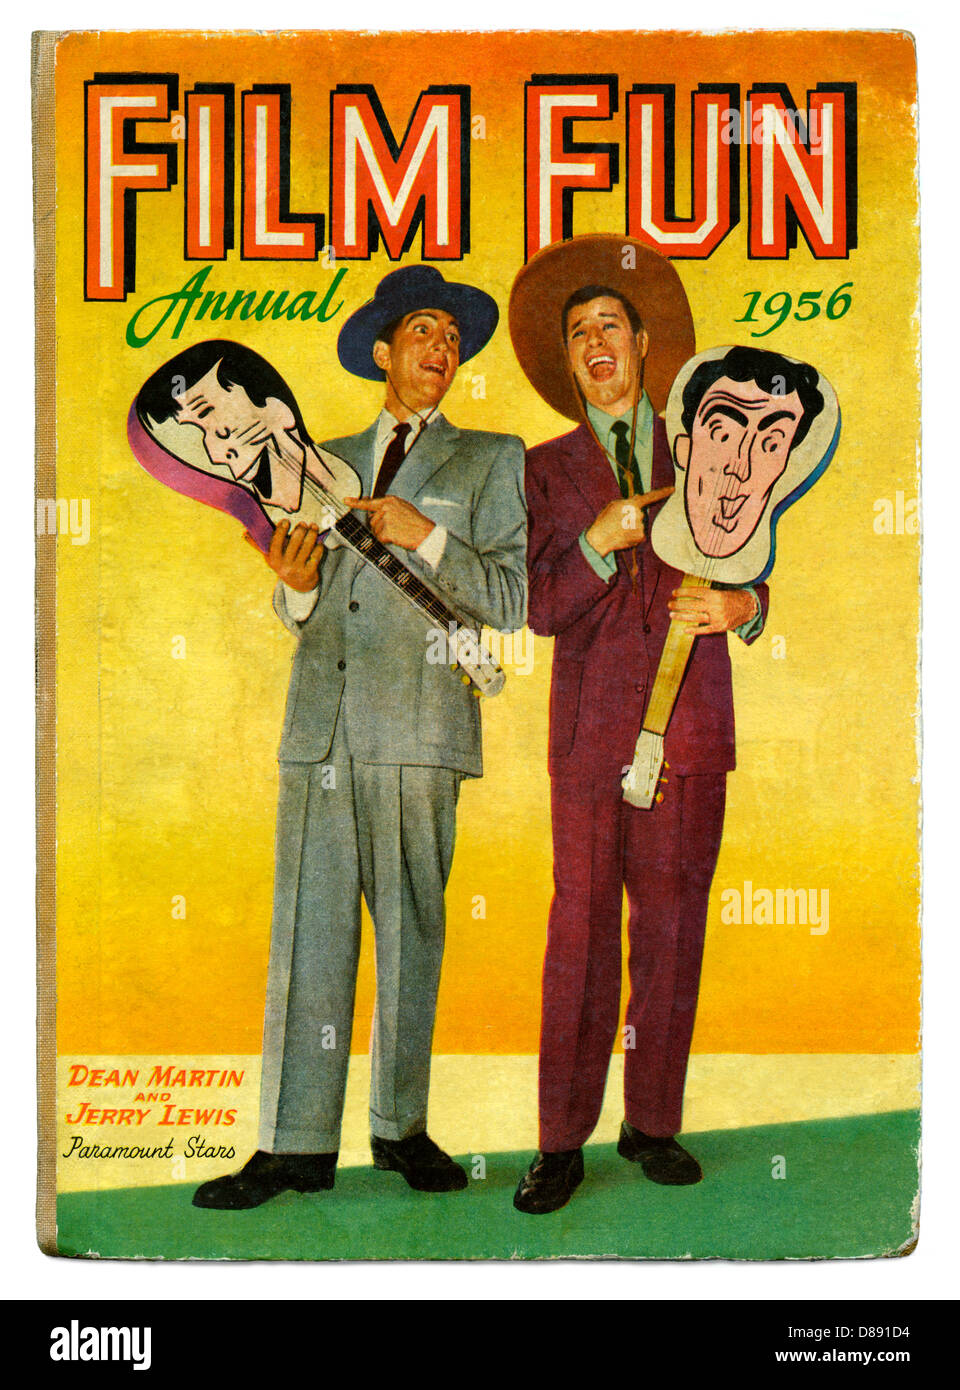 Vintage children's book, Film Fun annual, 1956, featured comedians and movie stars Dean Martin and Jerry Lewis - Stock Image